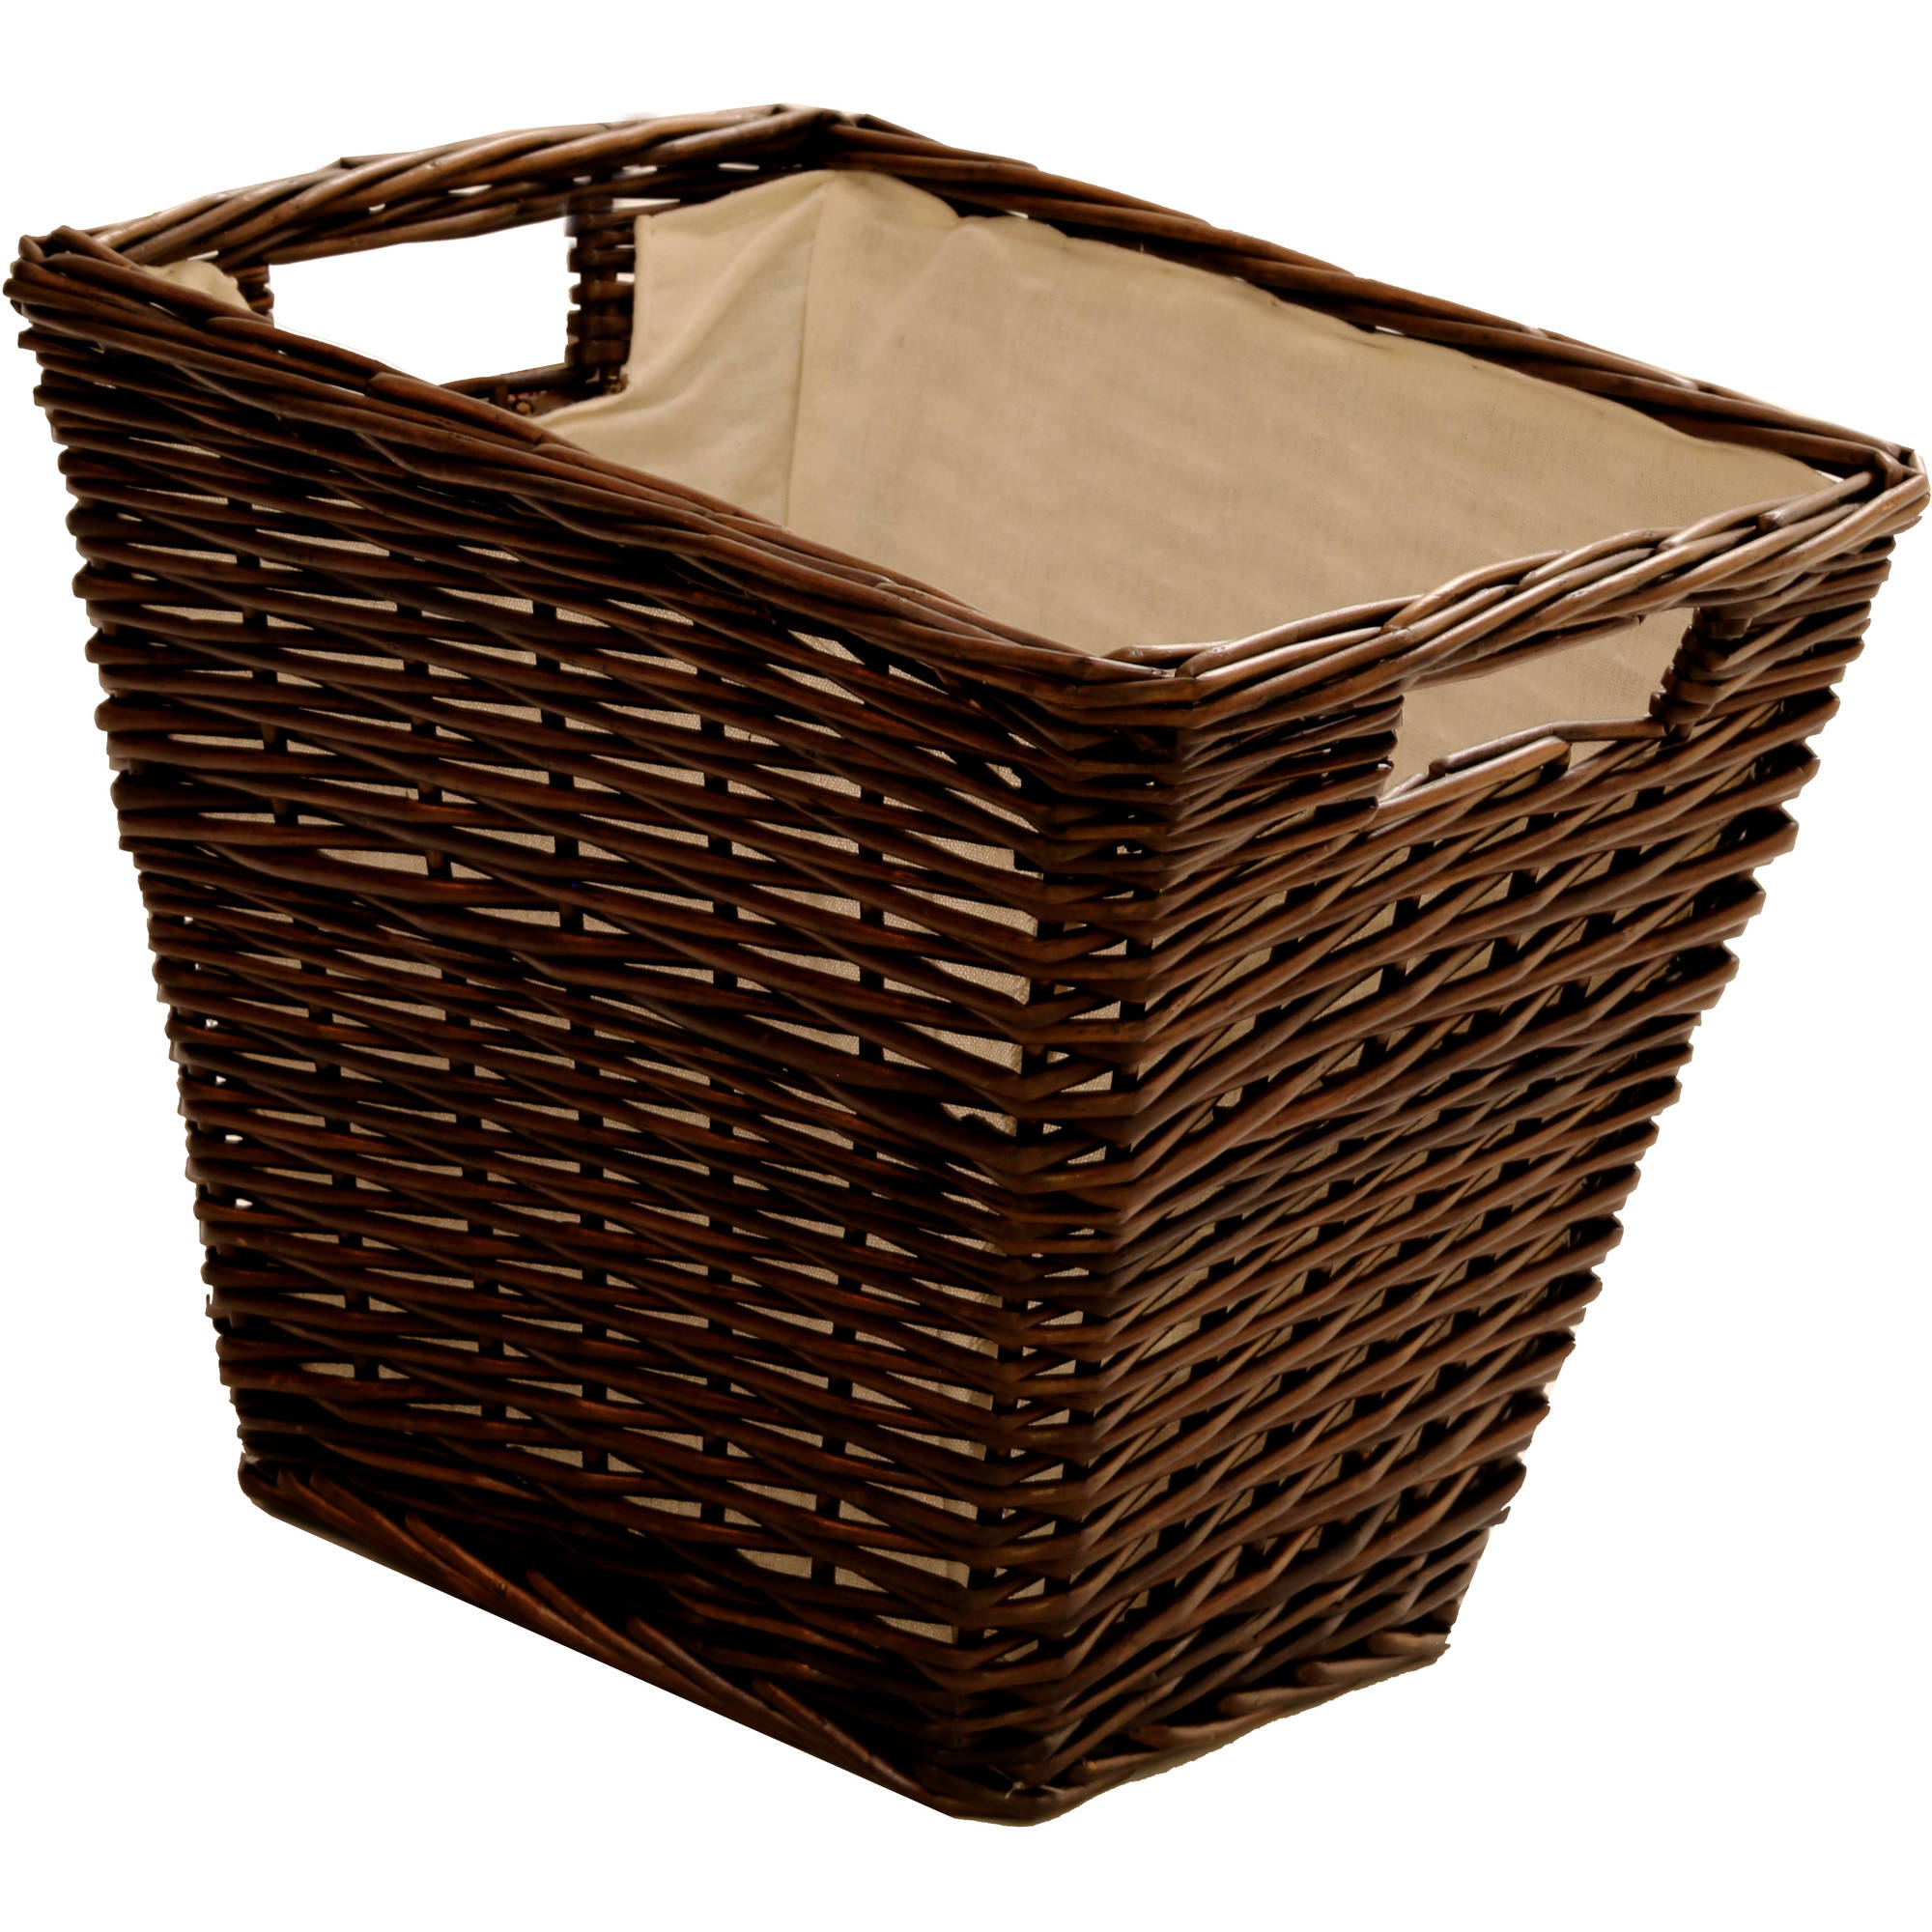 Beau Better Homes And Gardens Willow Cube Storage Basket   Walmart.com